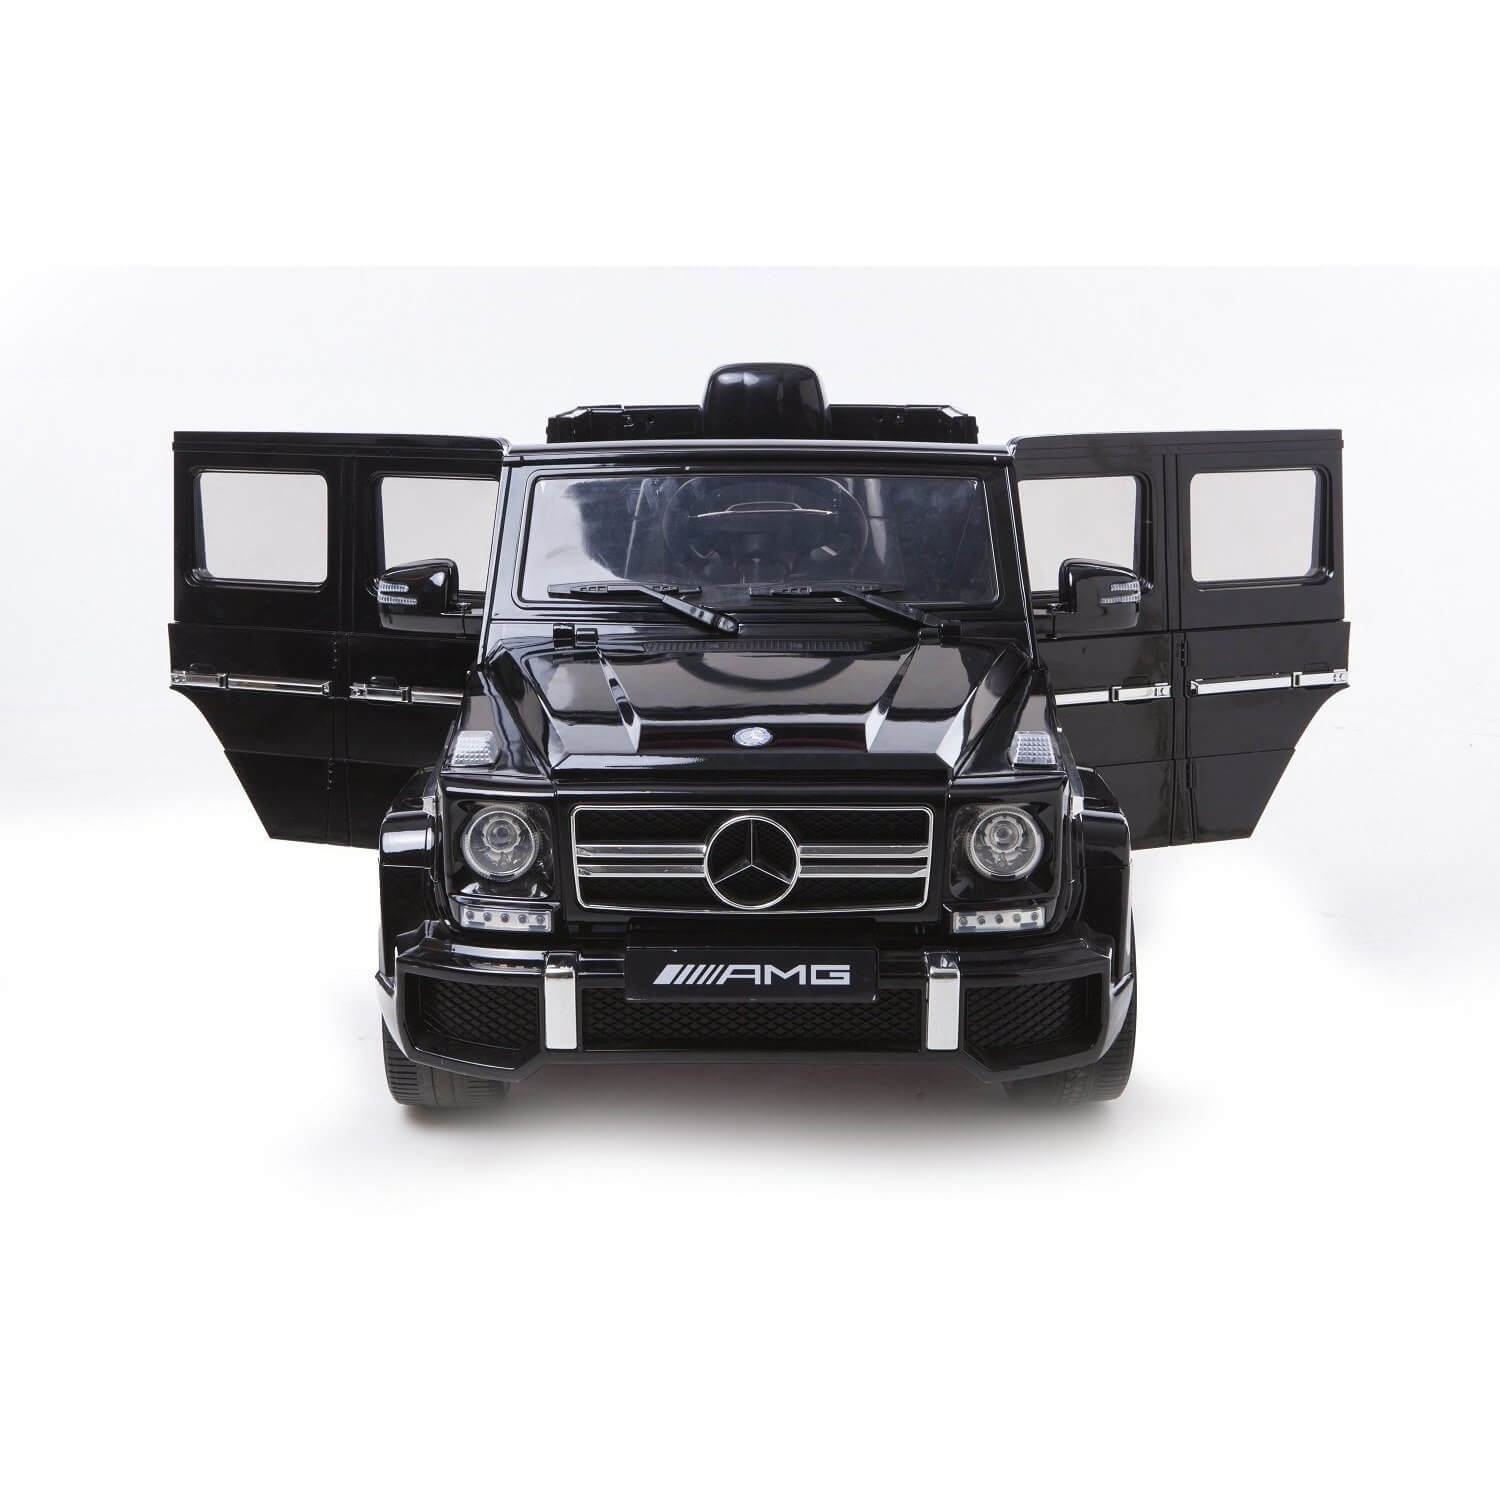 Raf Authentic Licensed   MERCEDES G-63 SUV Concept Ride on 12v car for kids - rafplay